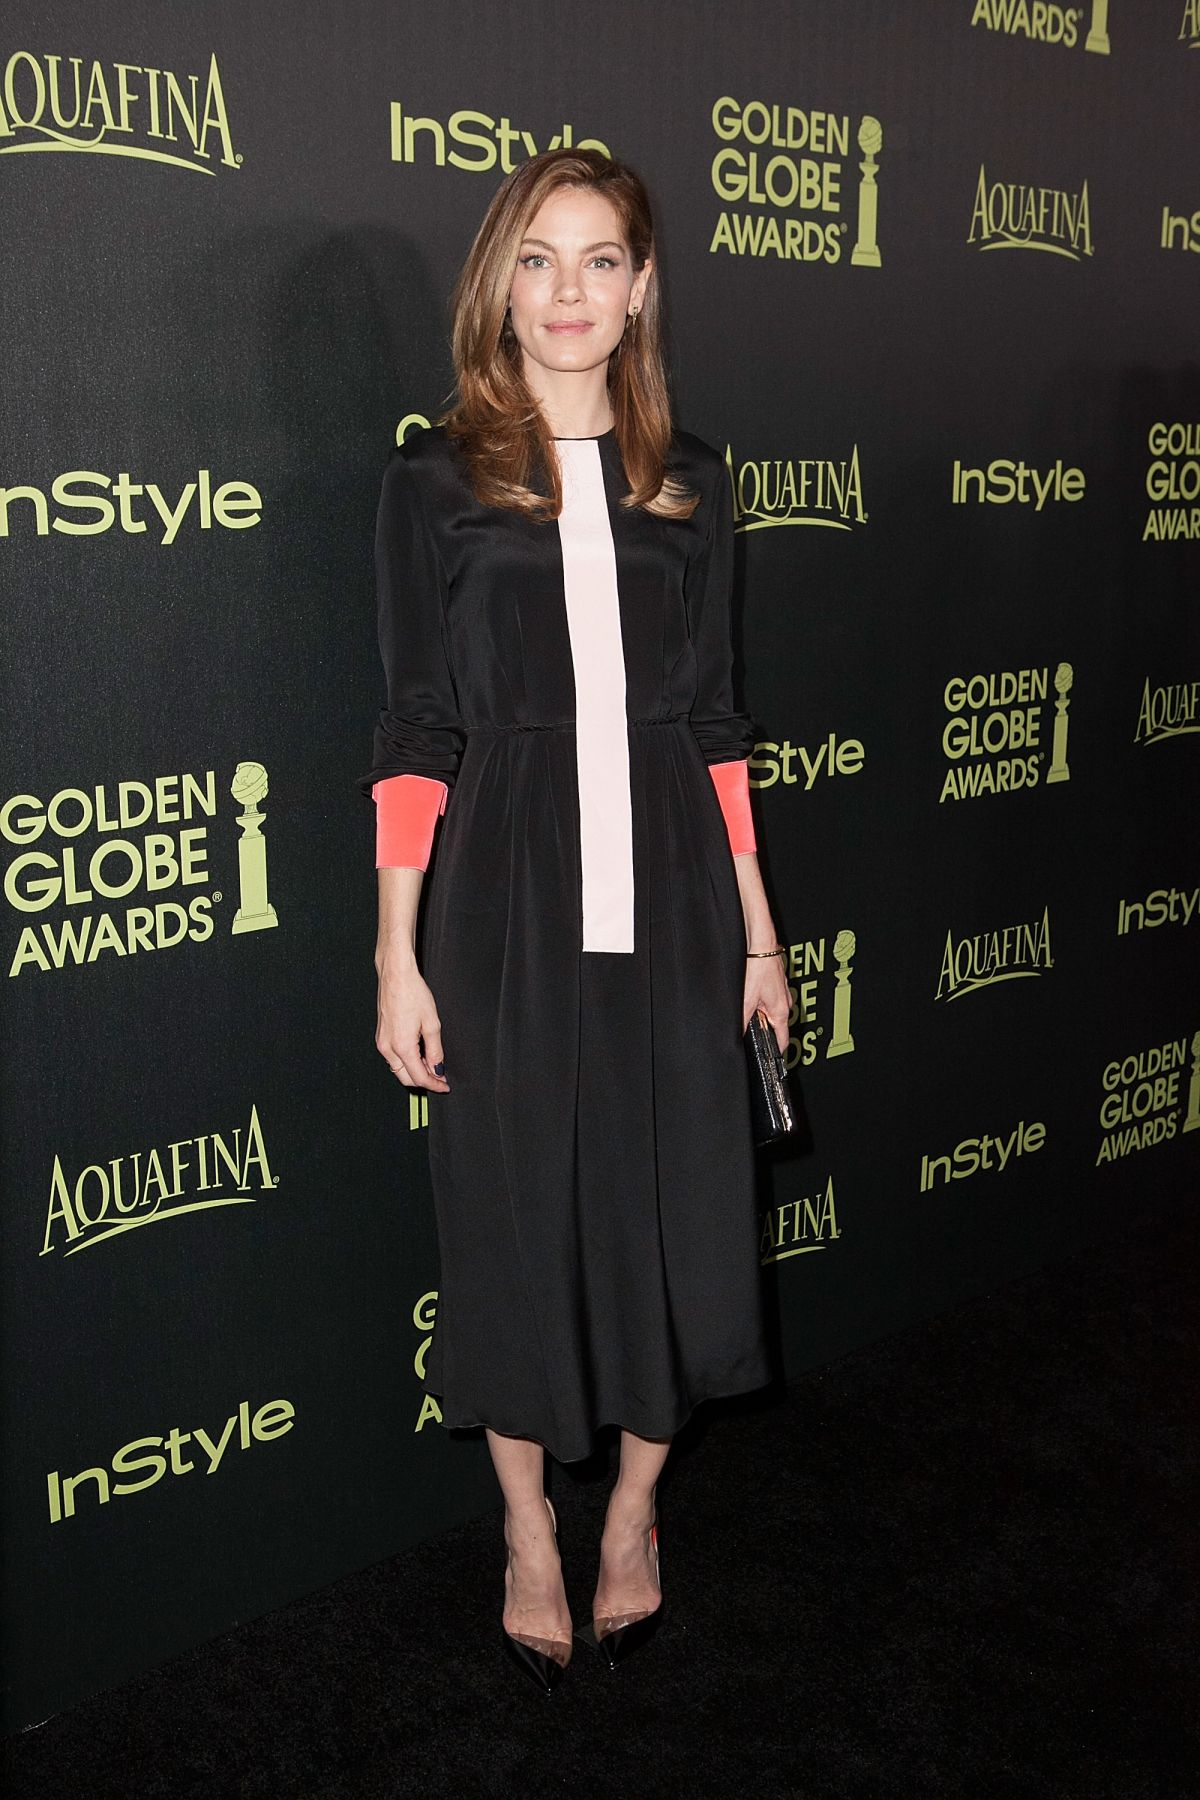 michelle-monaghan-at-hfpa-instyle-celebrate-golden-globe-award-season_2